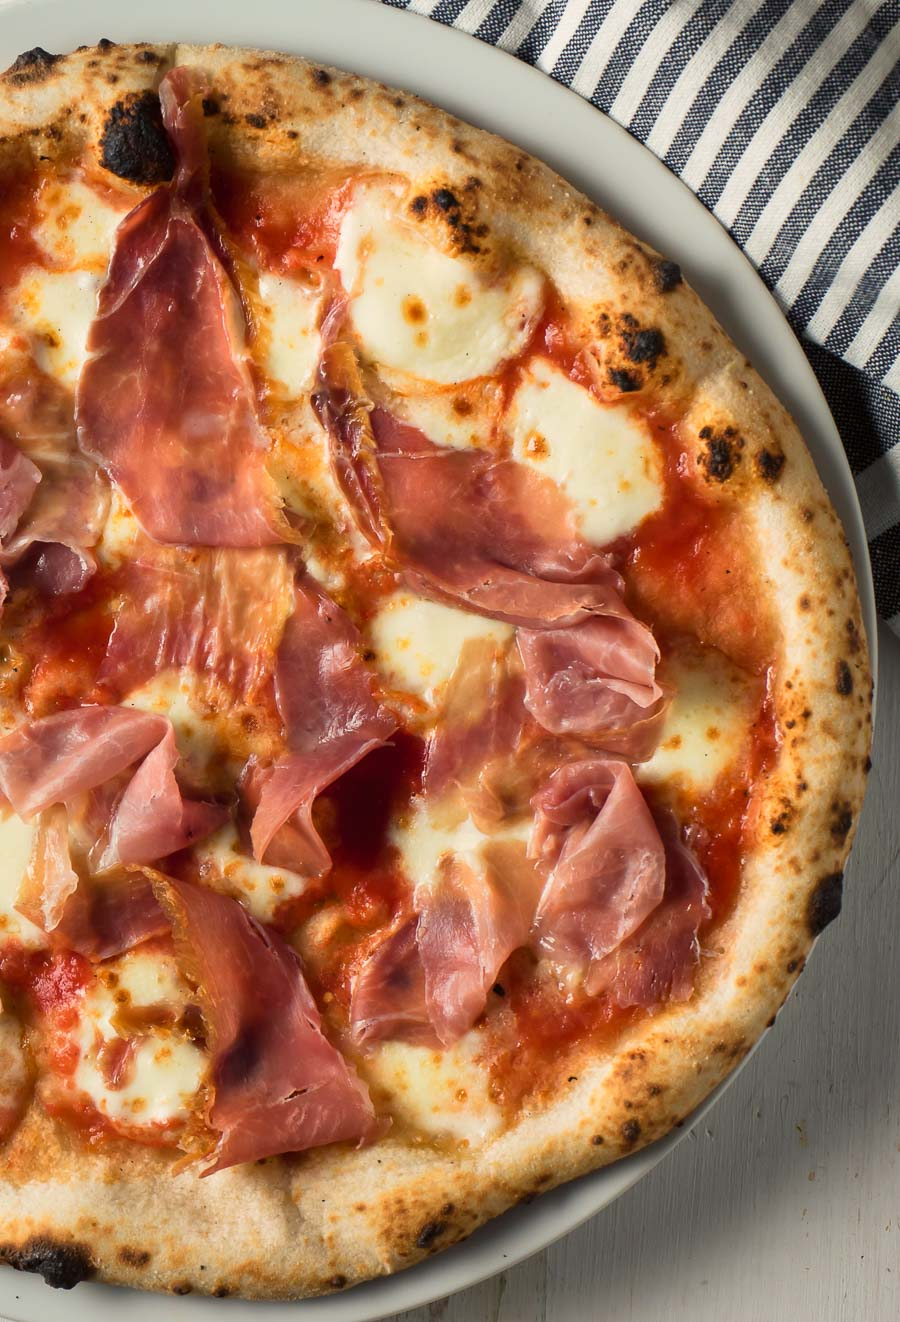 Neapolitan pizza with prosciutto and mozzarella